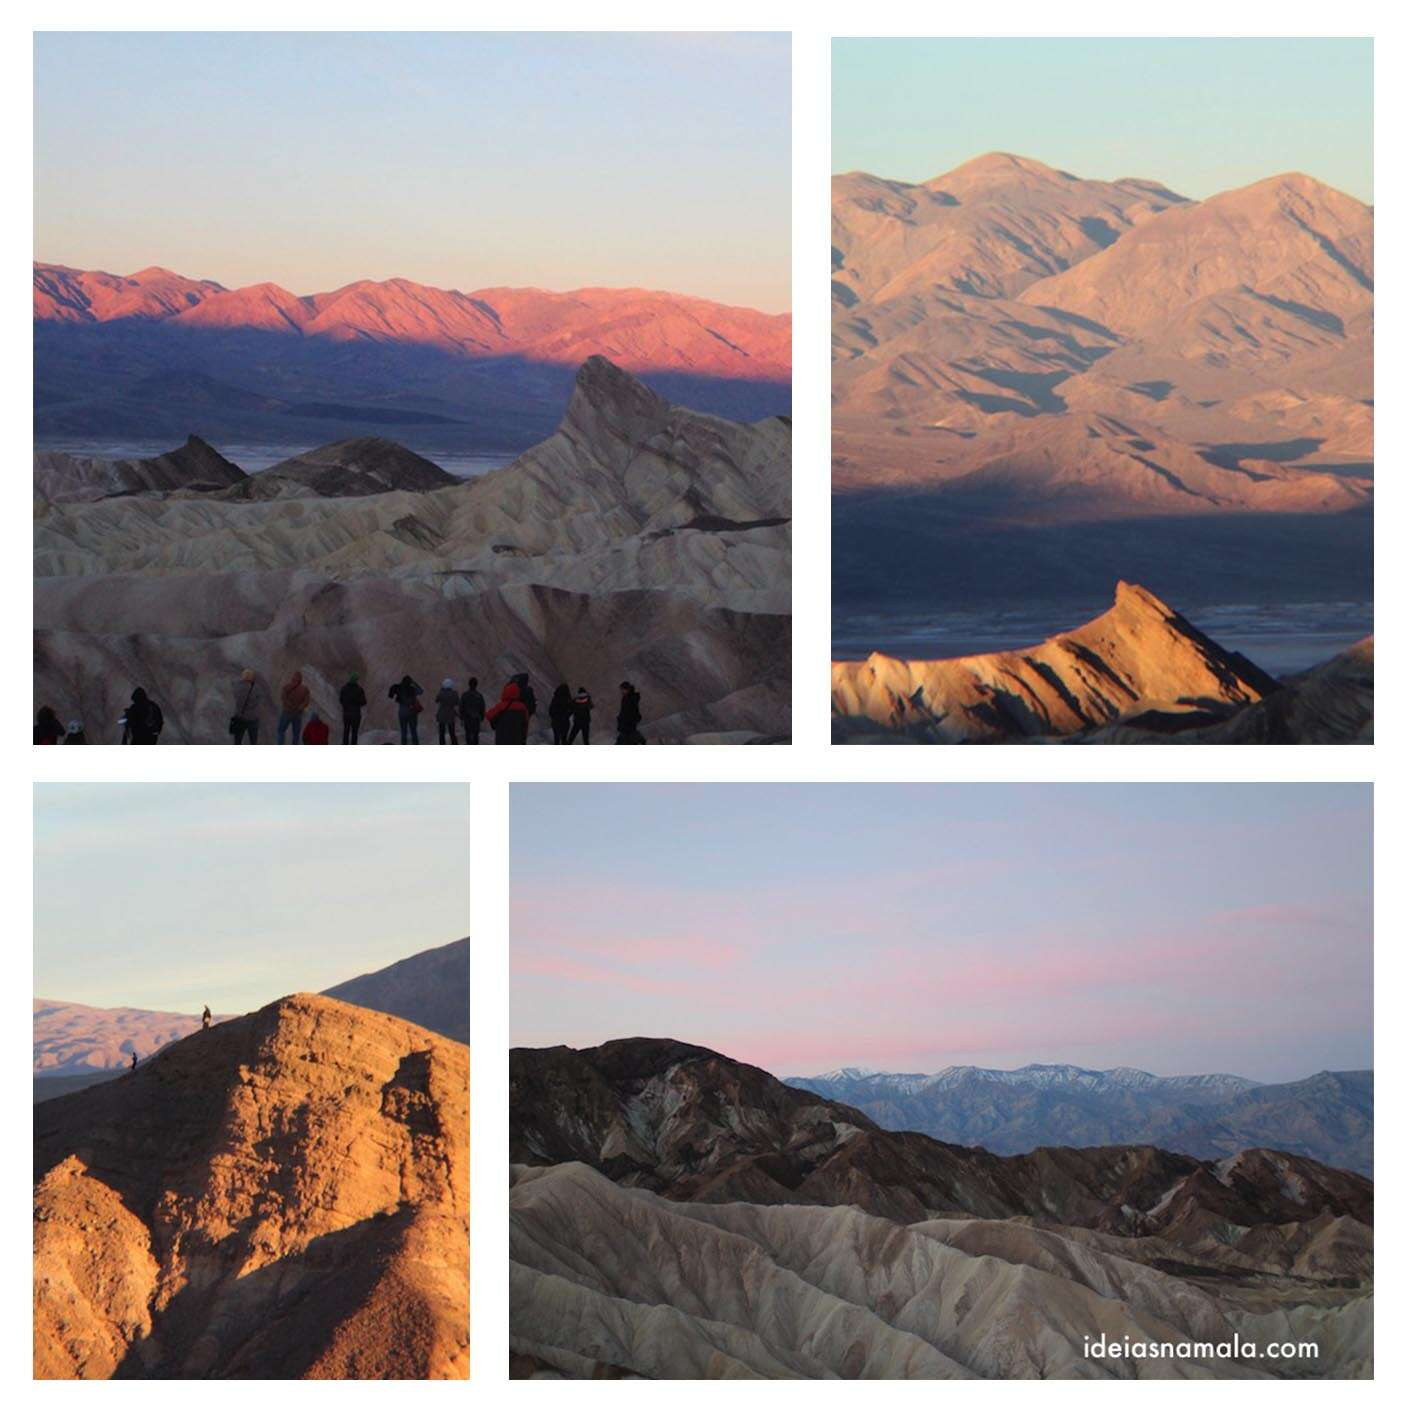 Death Valley: Zabriskie Point